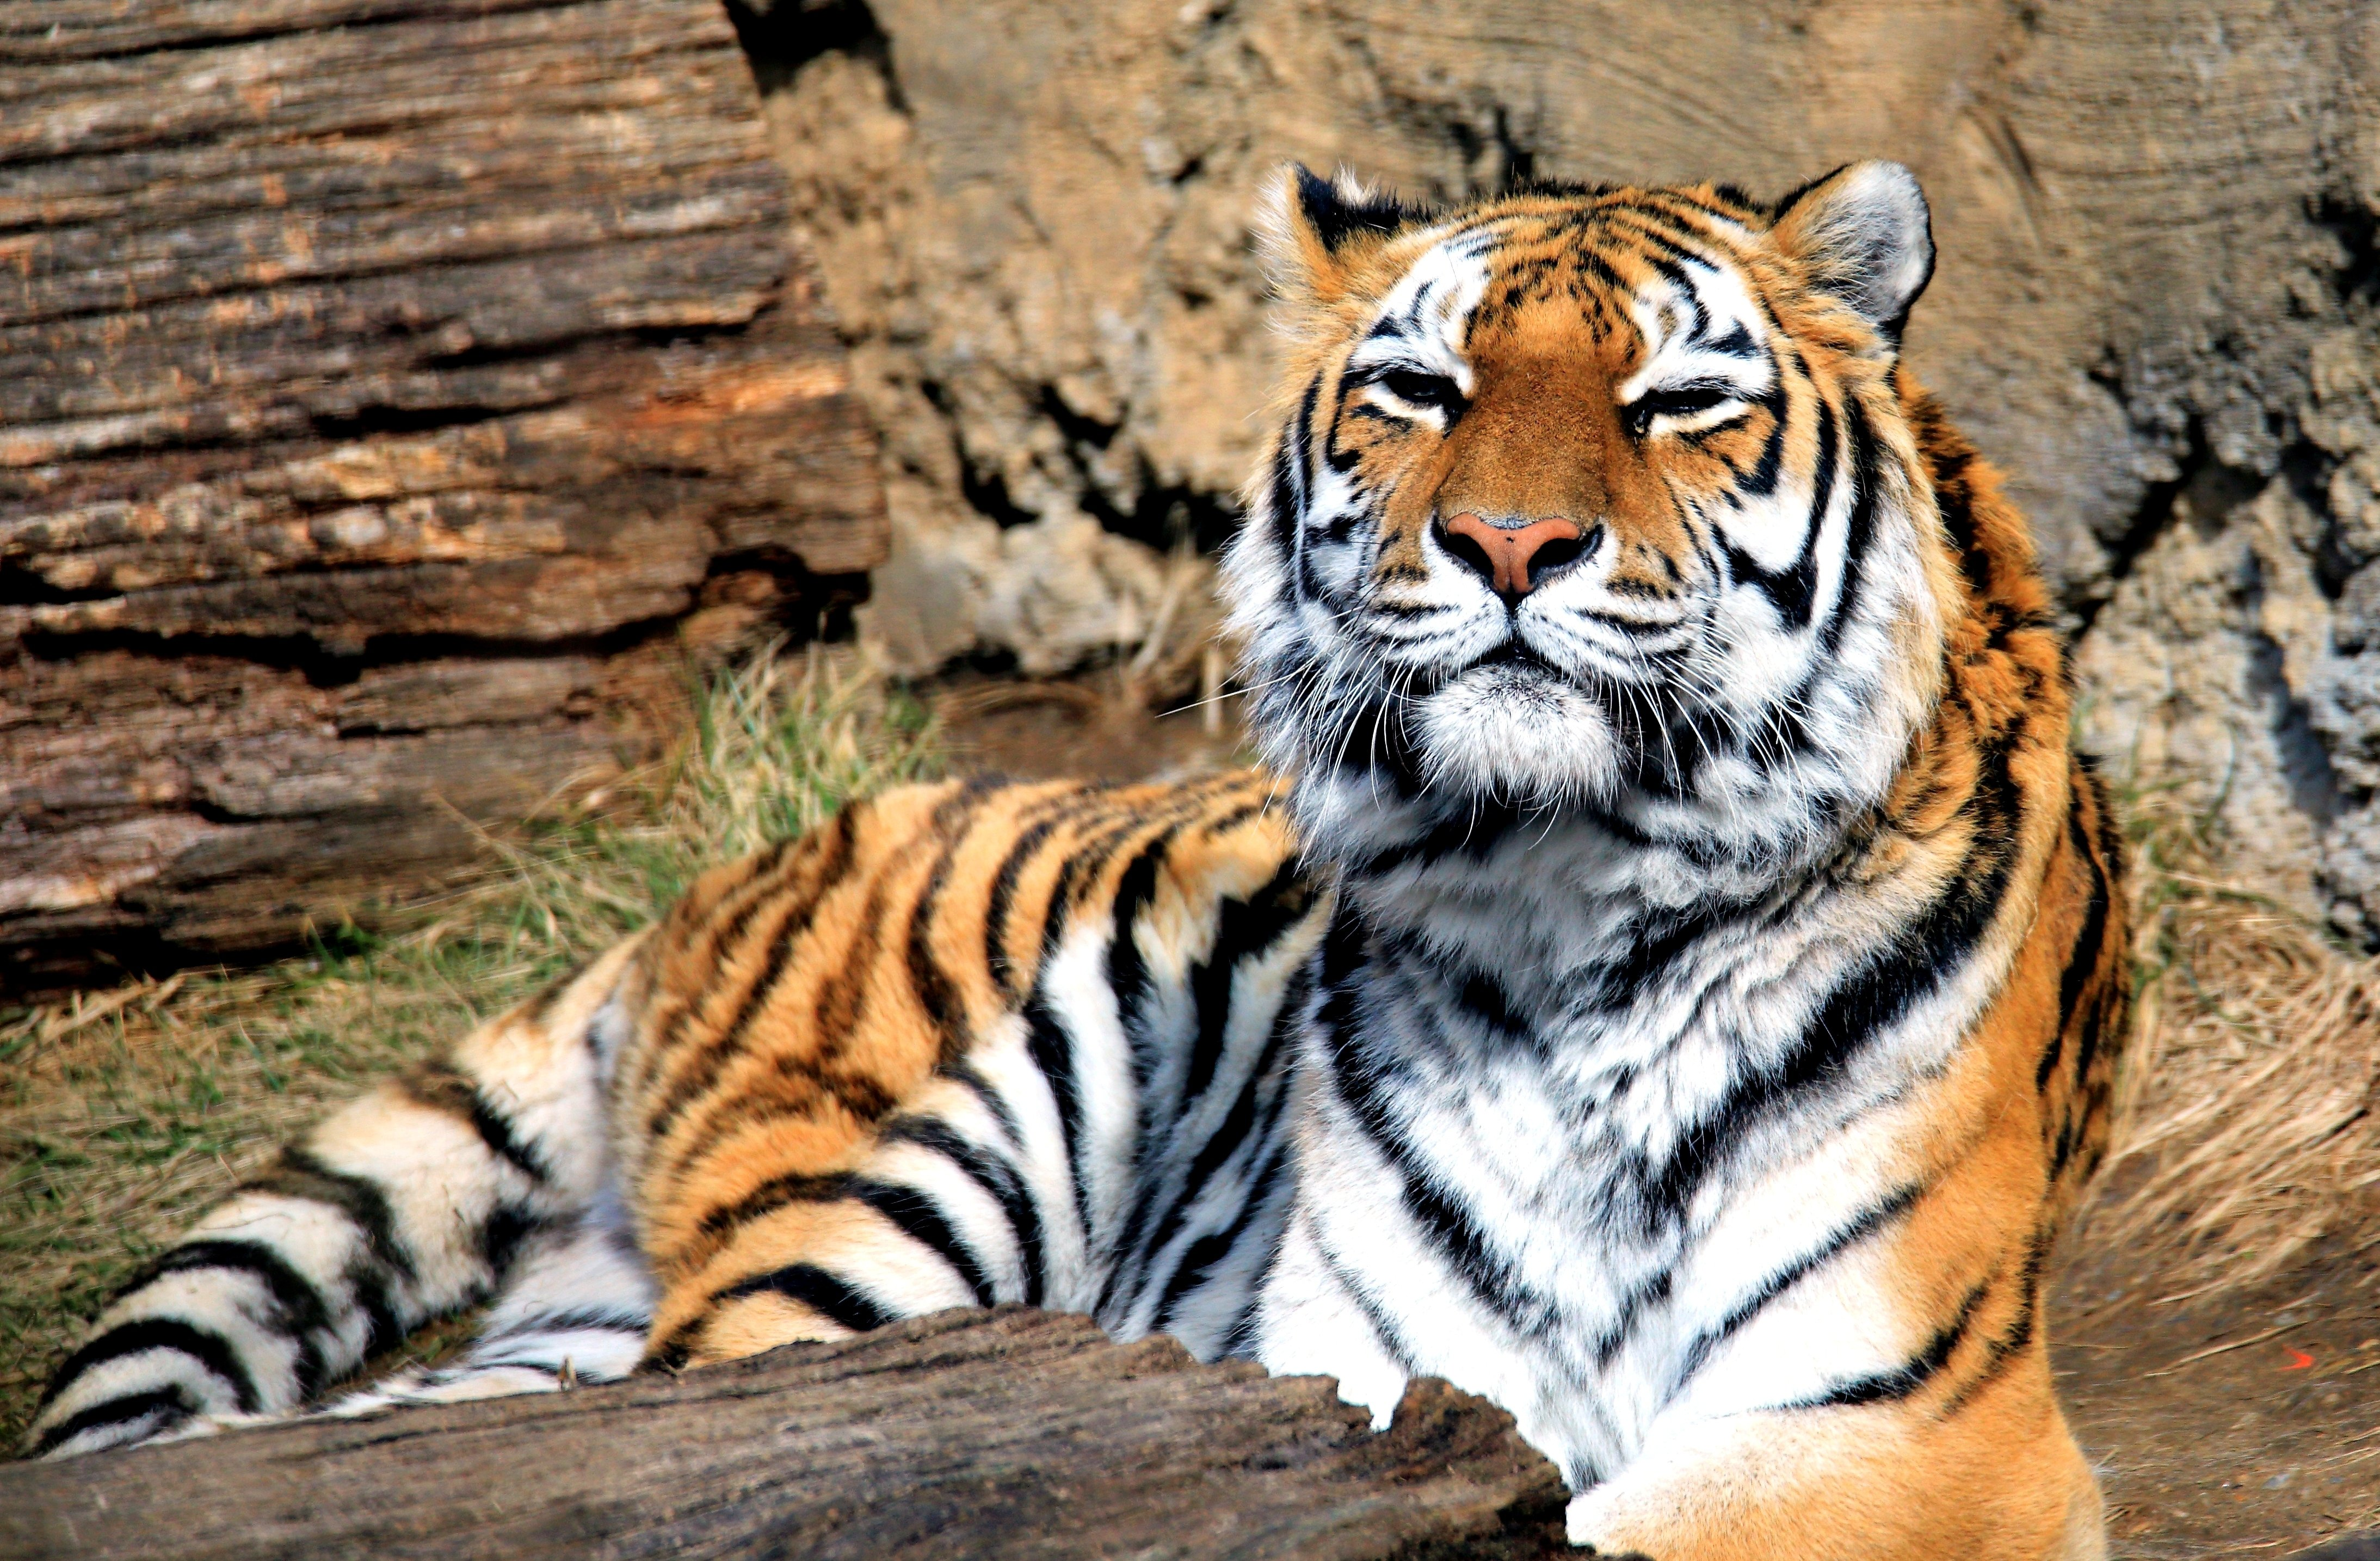 animal tiger panthera tigris predator mammal big cat wallpaper